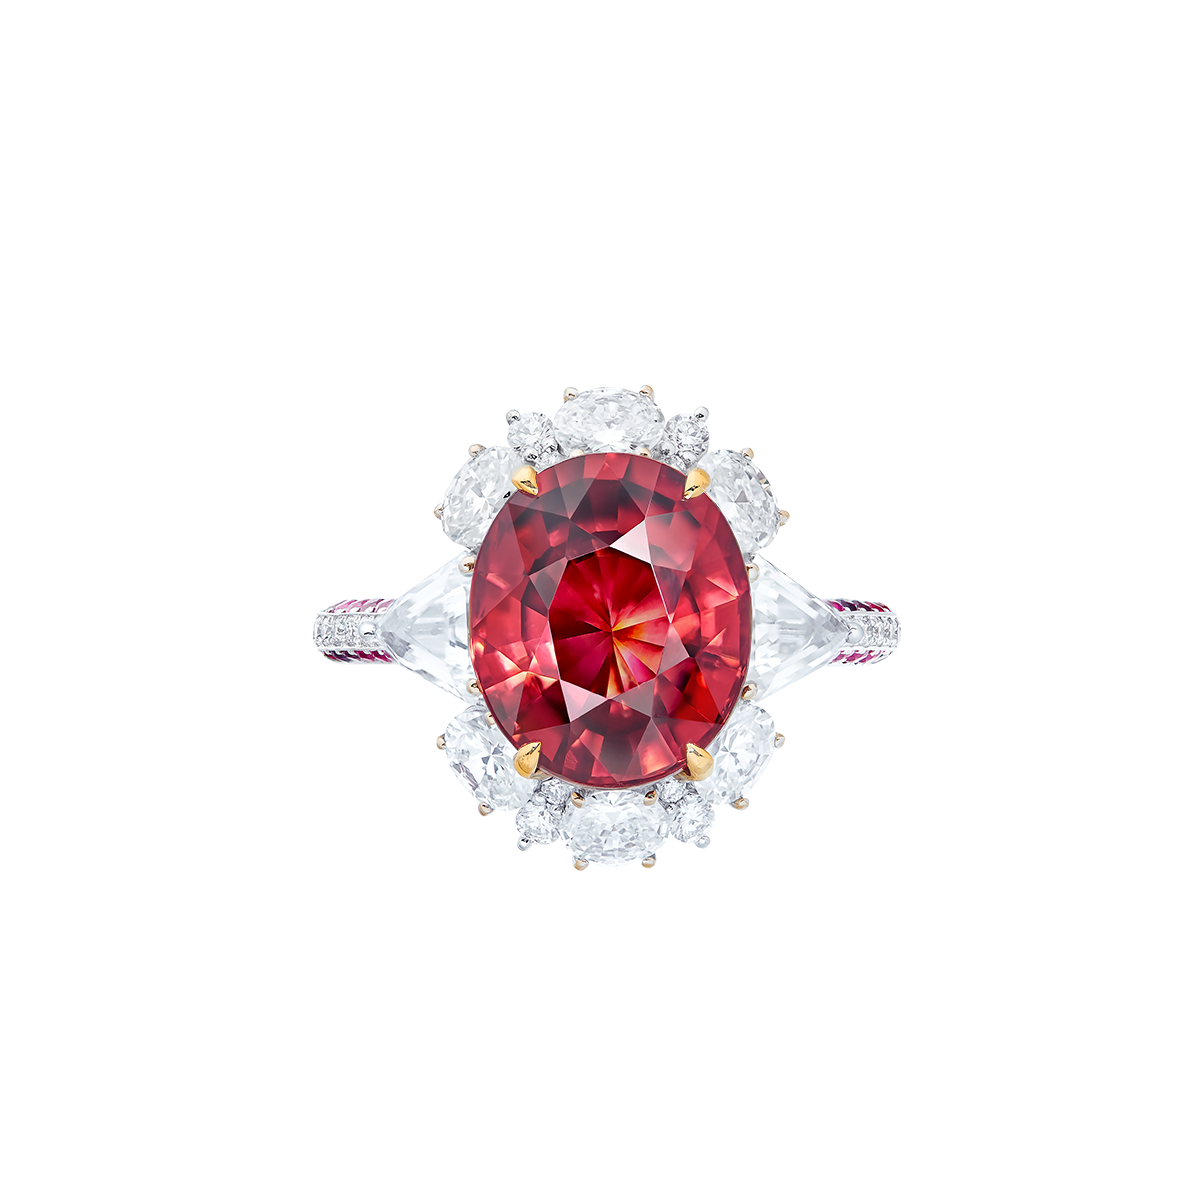 5.48克拉 變色石榴石鑽戒